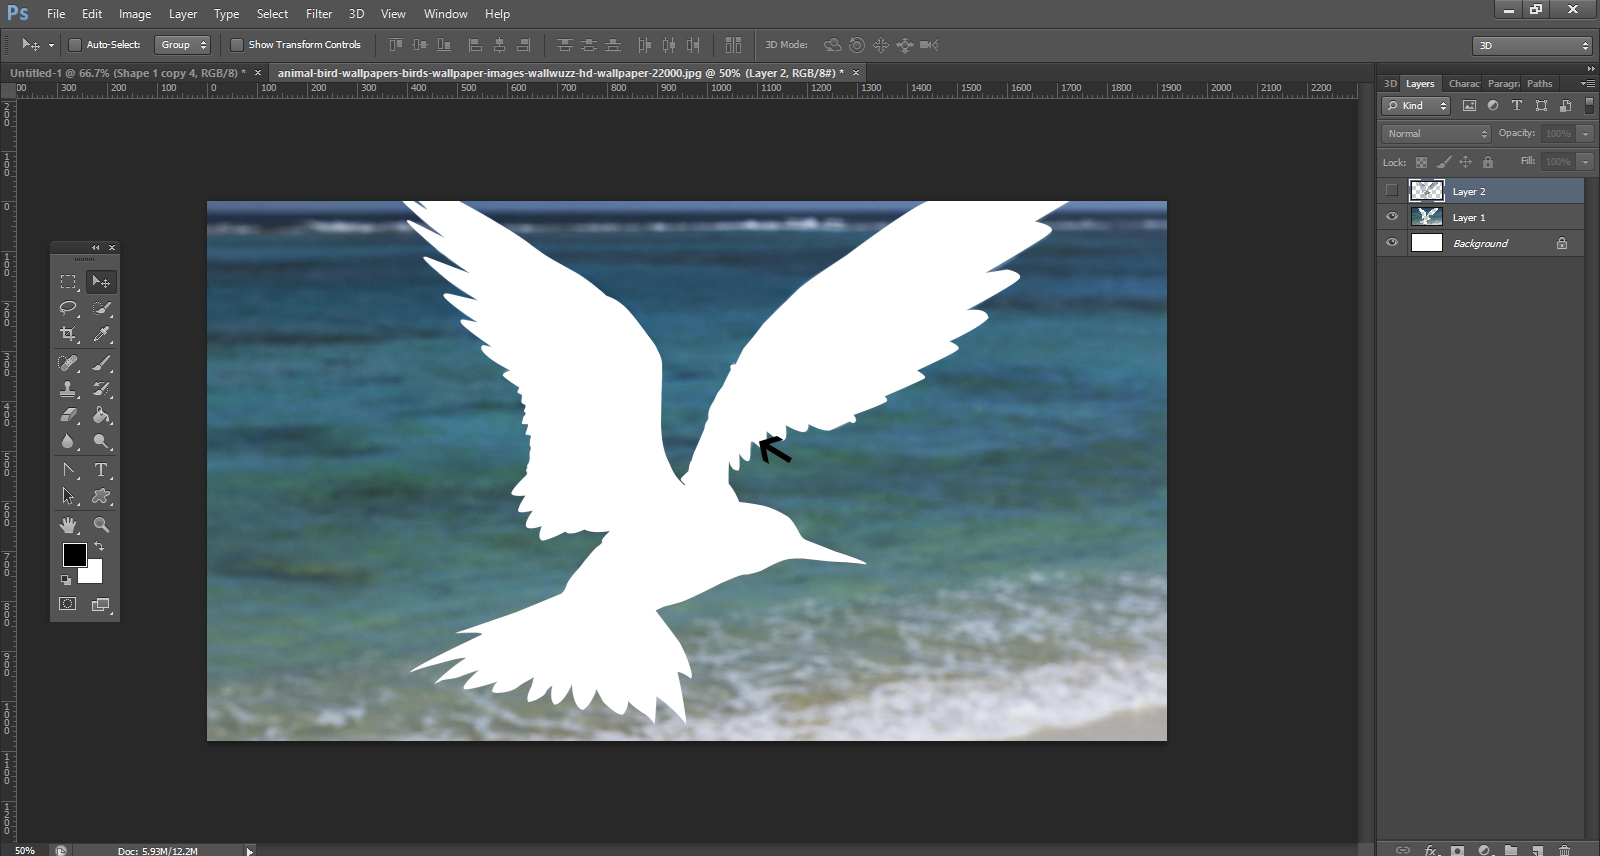 How To Remove Background From An Image In Photoshop6